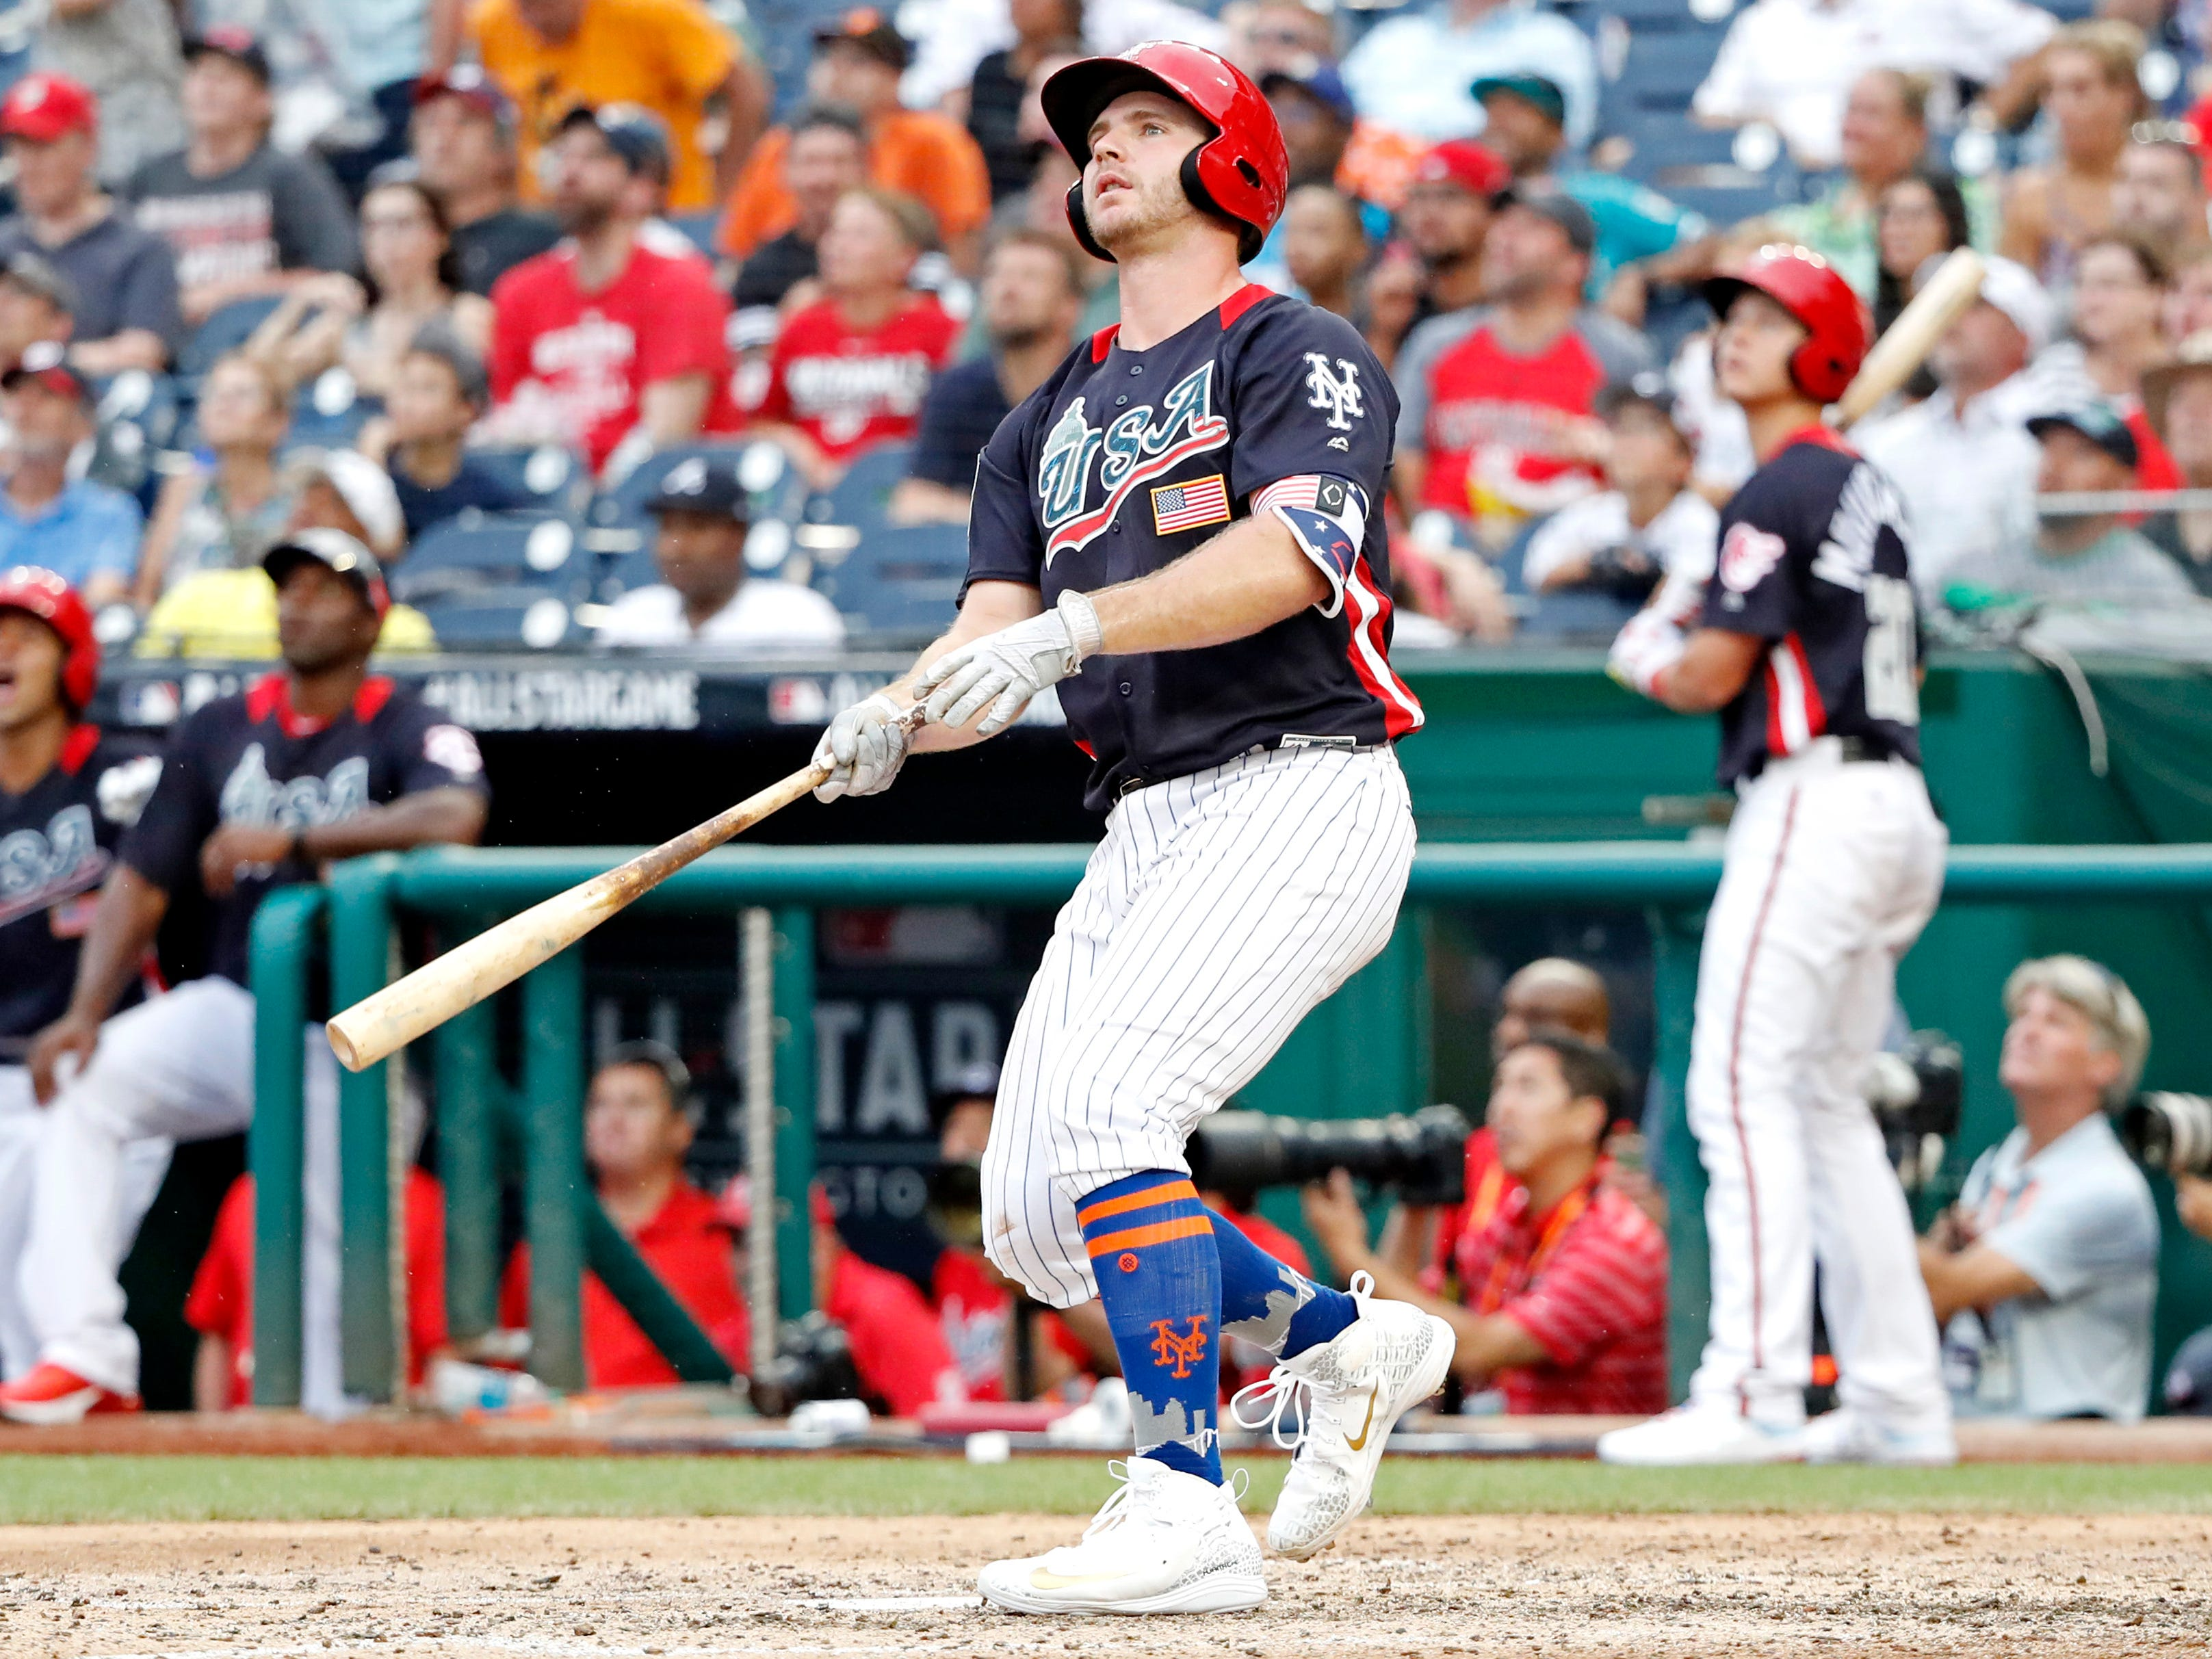 8. Peter Alonso, 1B, Mets